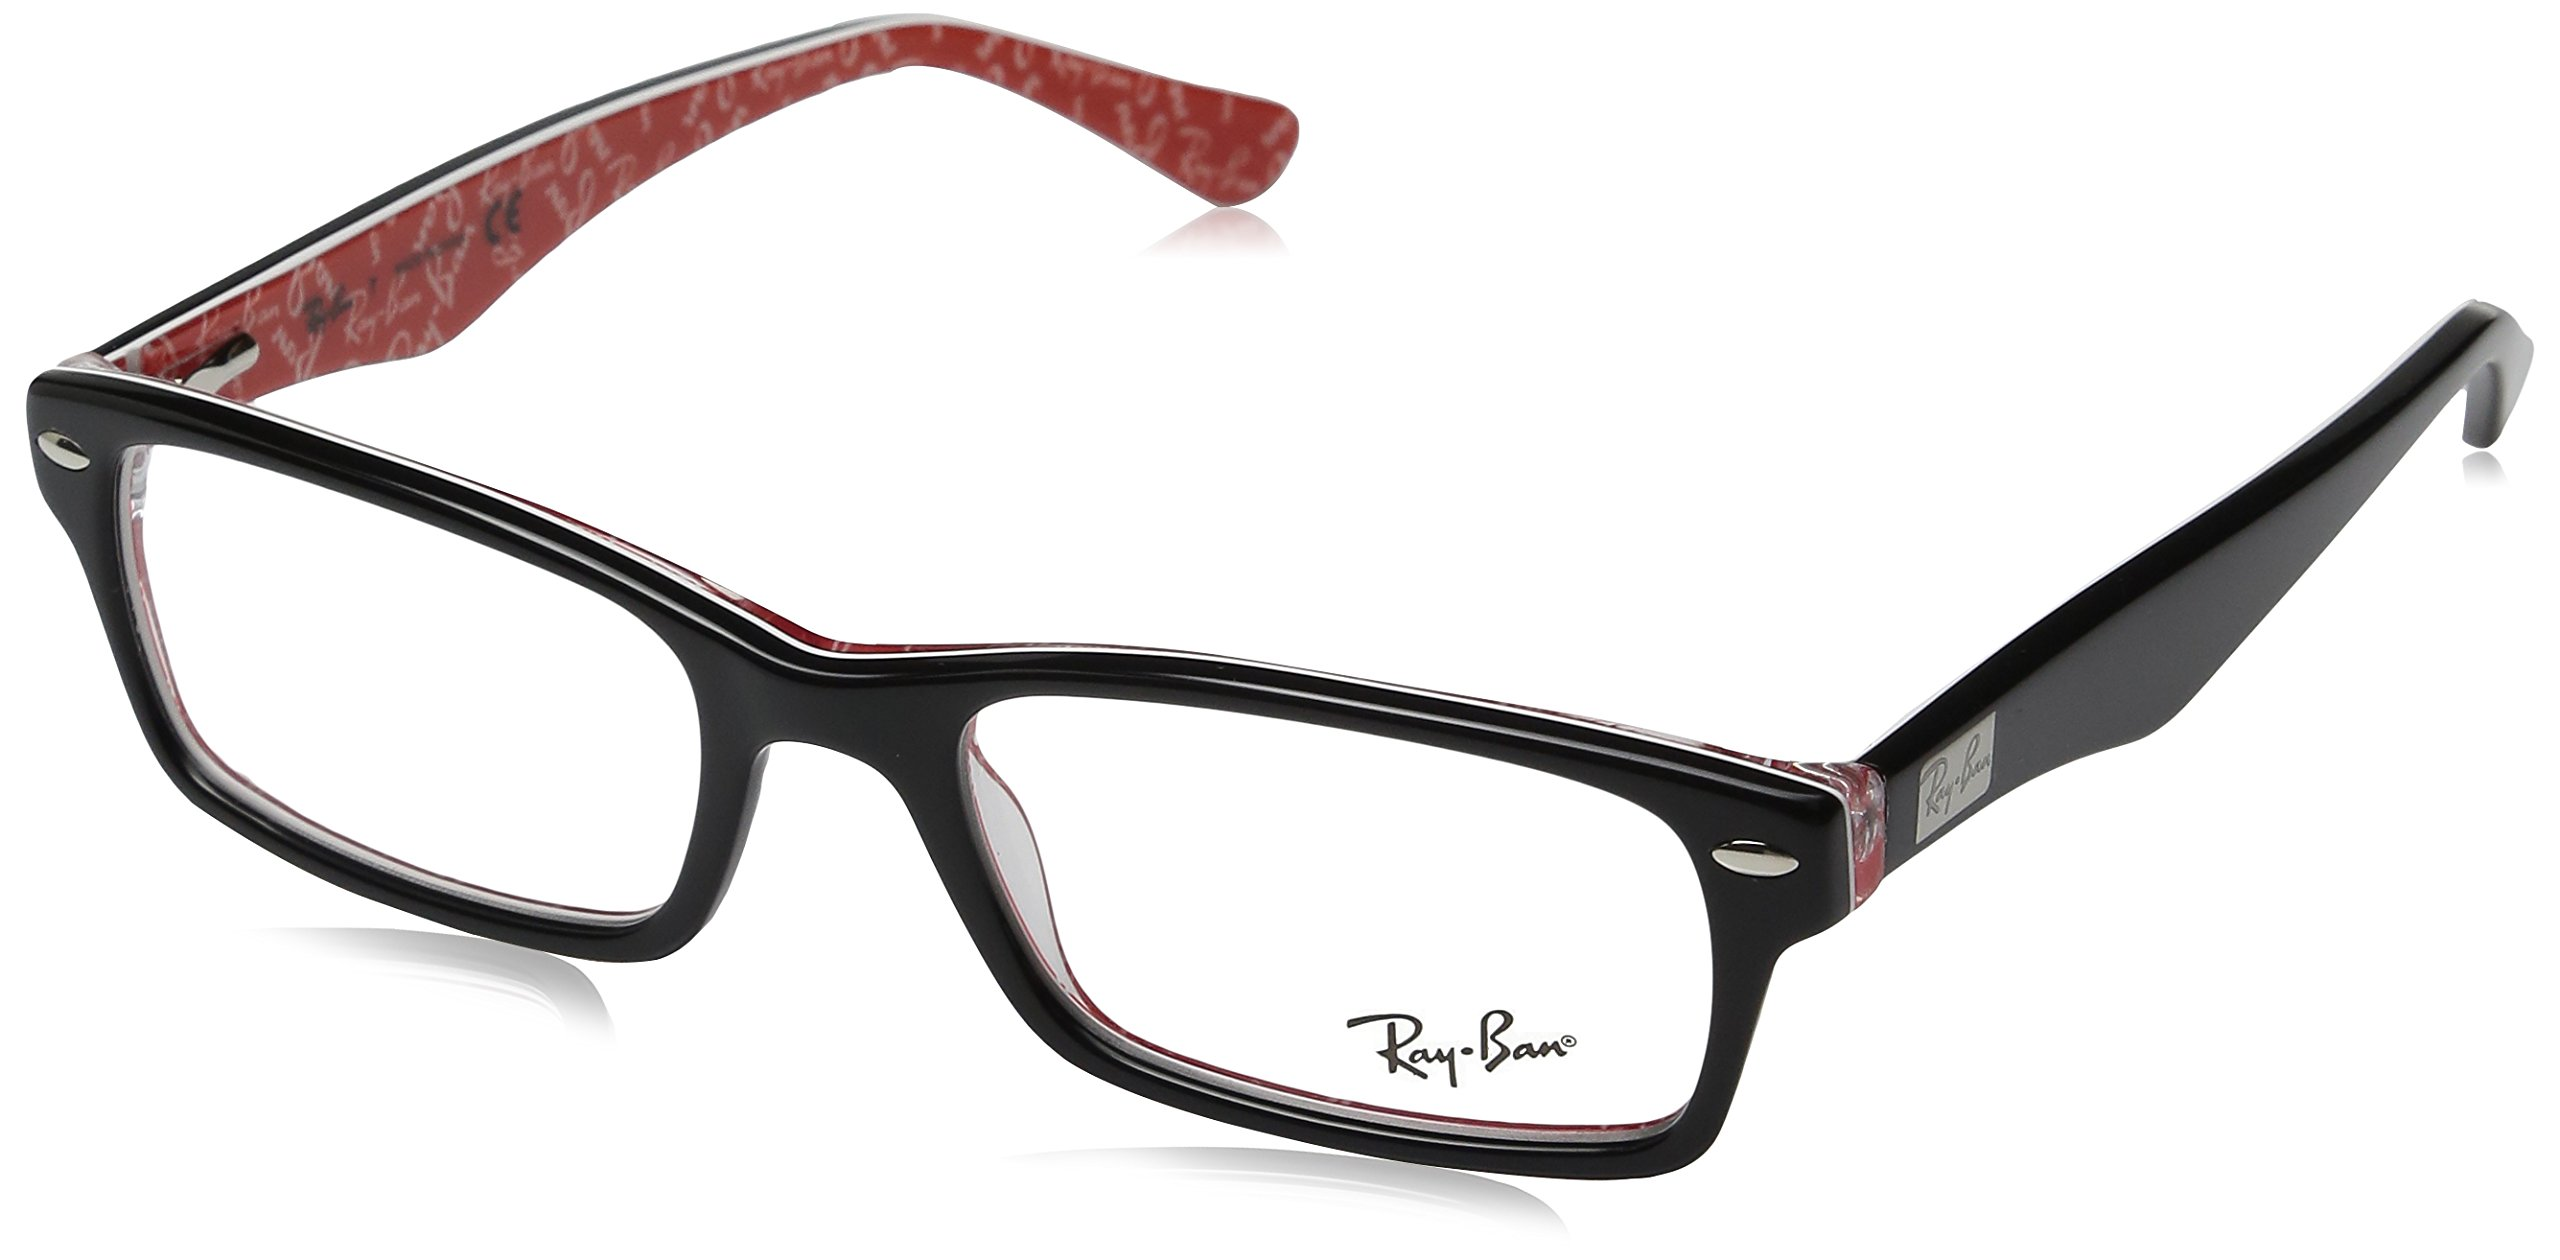 Ray-Ban Men's Rx5206 Rectangular Eyeglasses,Top Black & Texture Red,54 mm